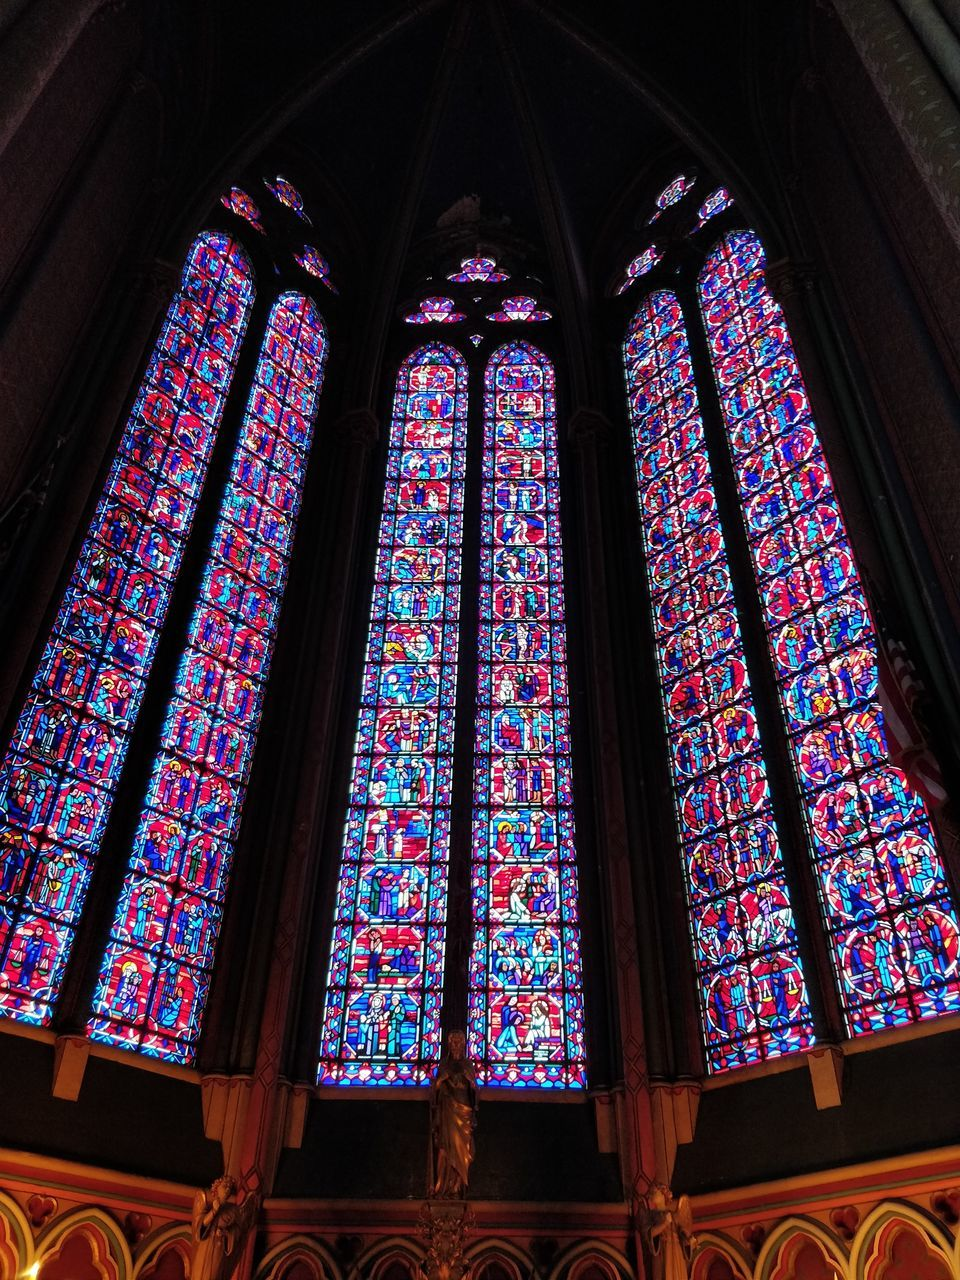 stained glass, glass, window, place of worship, low angle view, built structure, multi colored, architecture, religion, spirituality, glass - material, belief, indoors, building, no people, art and craft, day, ornate, floral pattern, ceiling